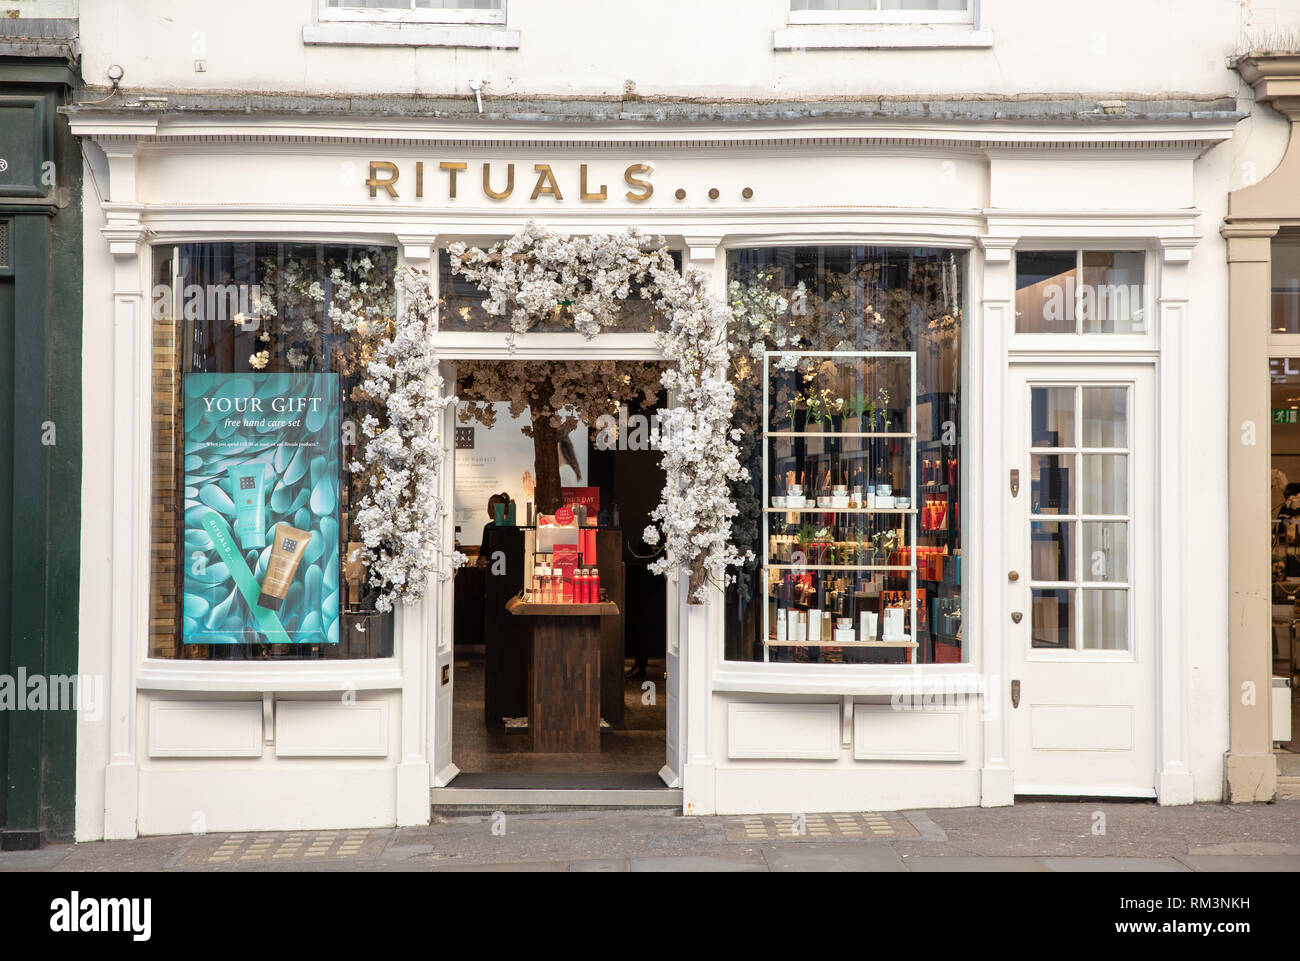 Rituals store, London, - Stock Image